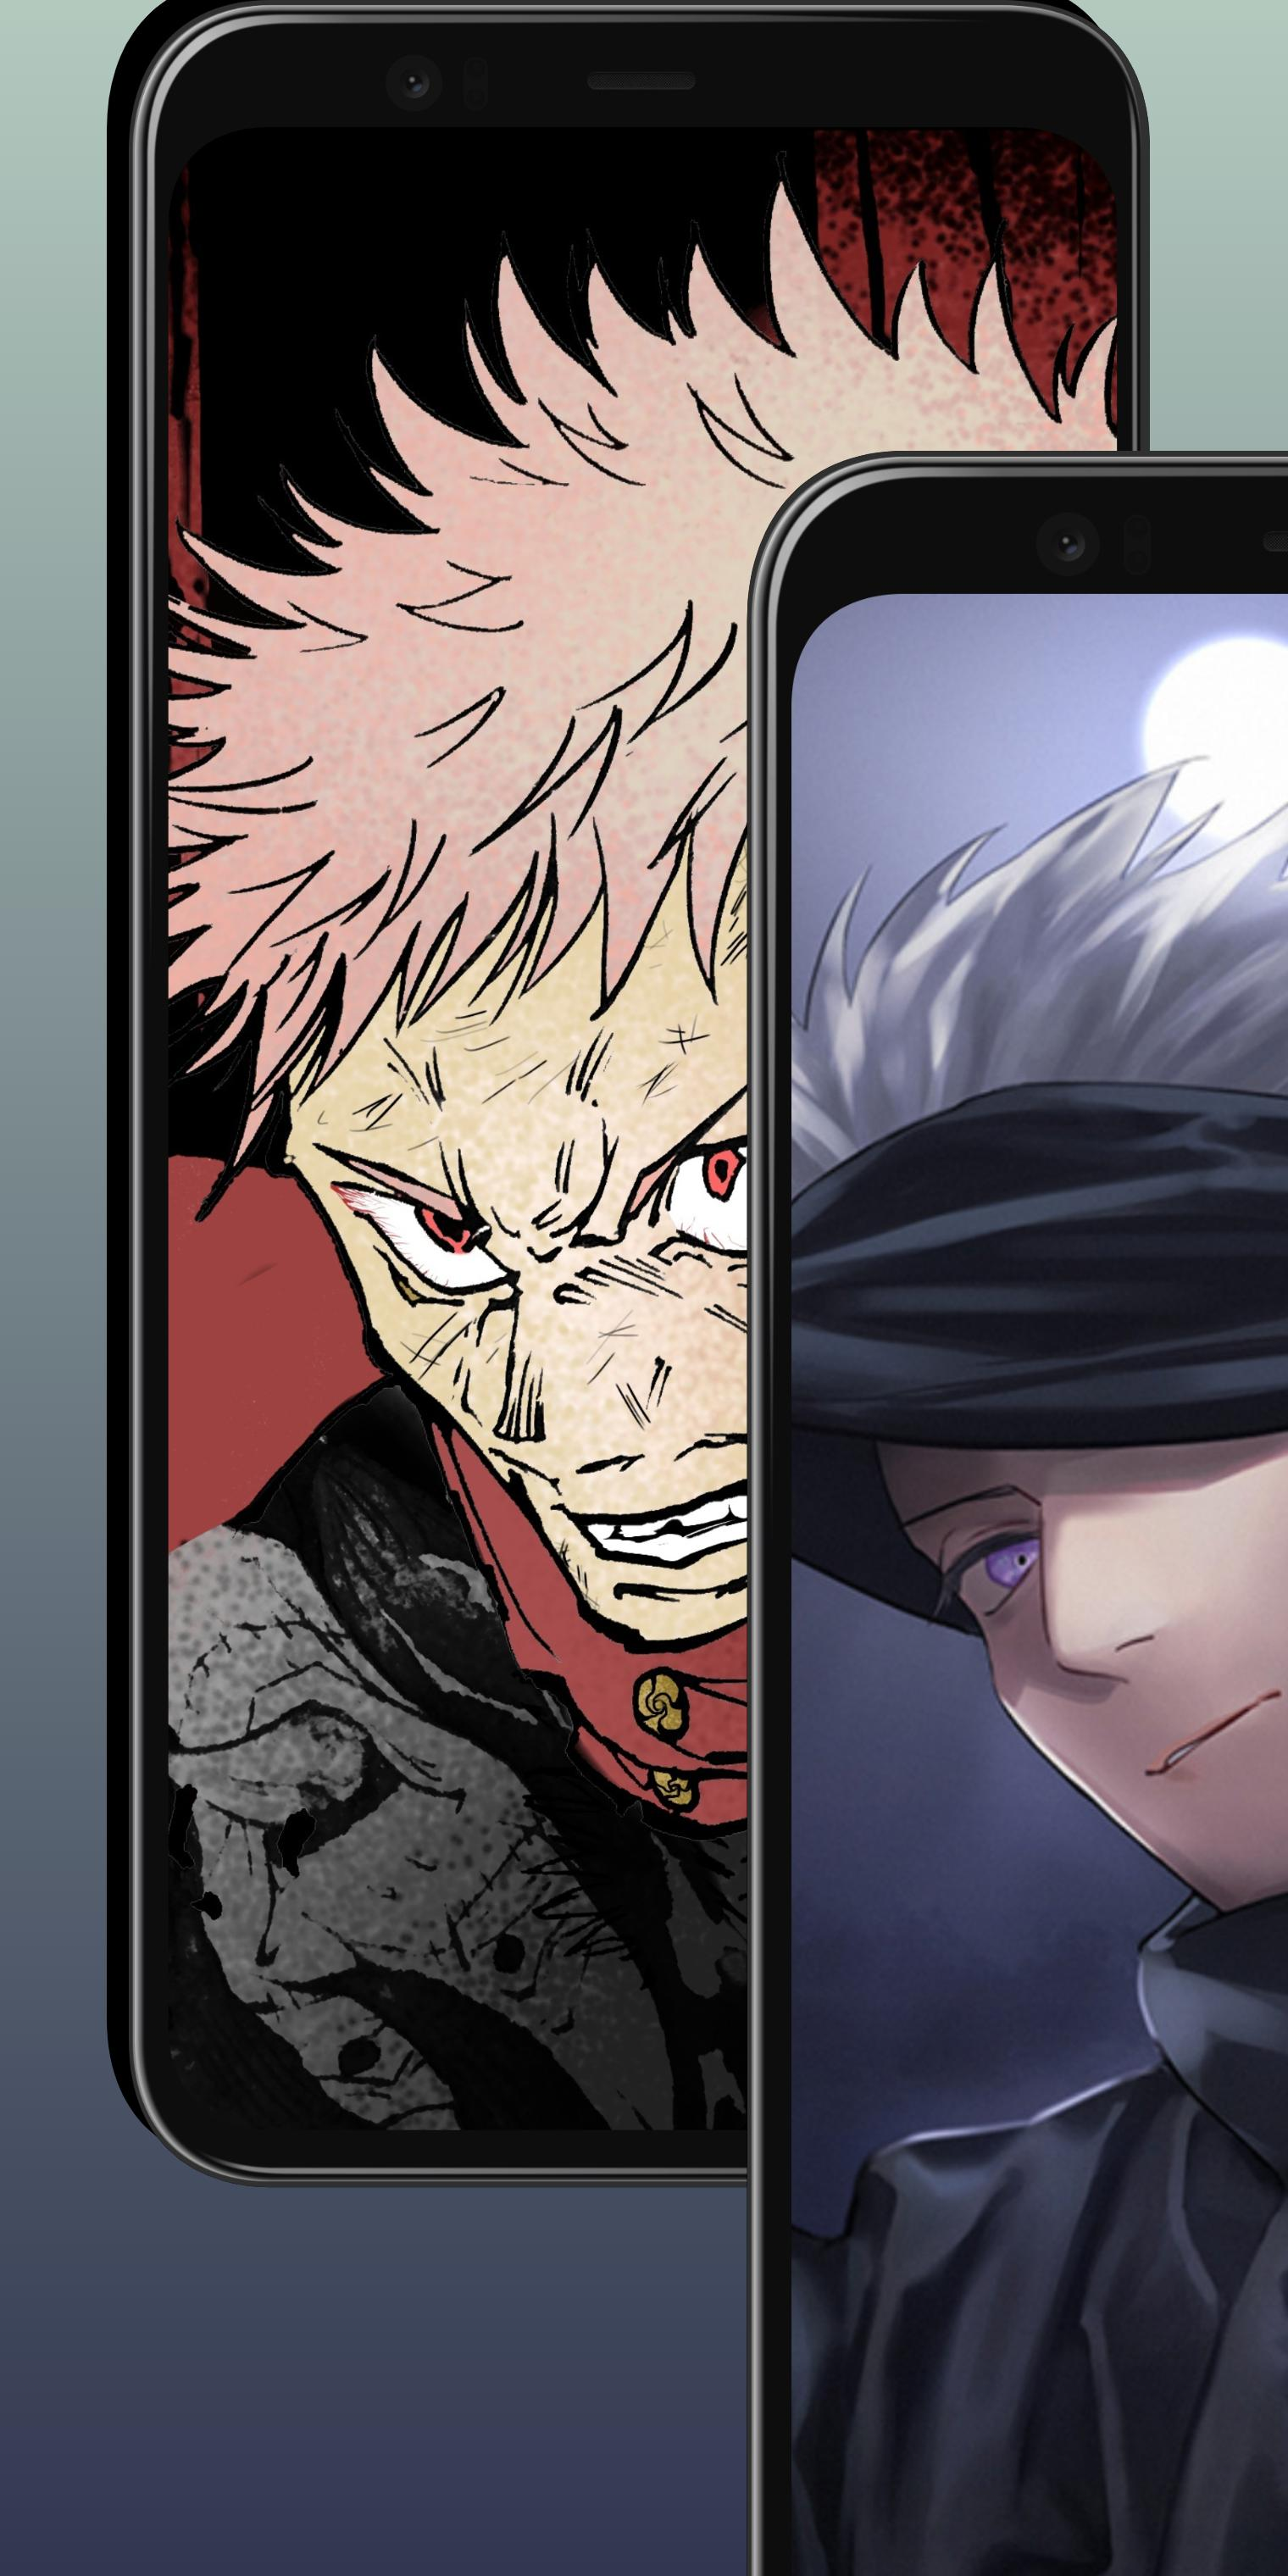 Jujutsu Kaisen Wallpapers for Android - APK Download